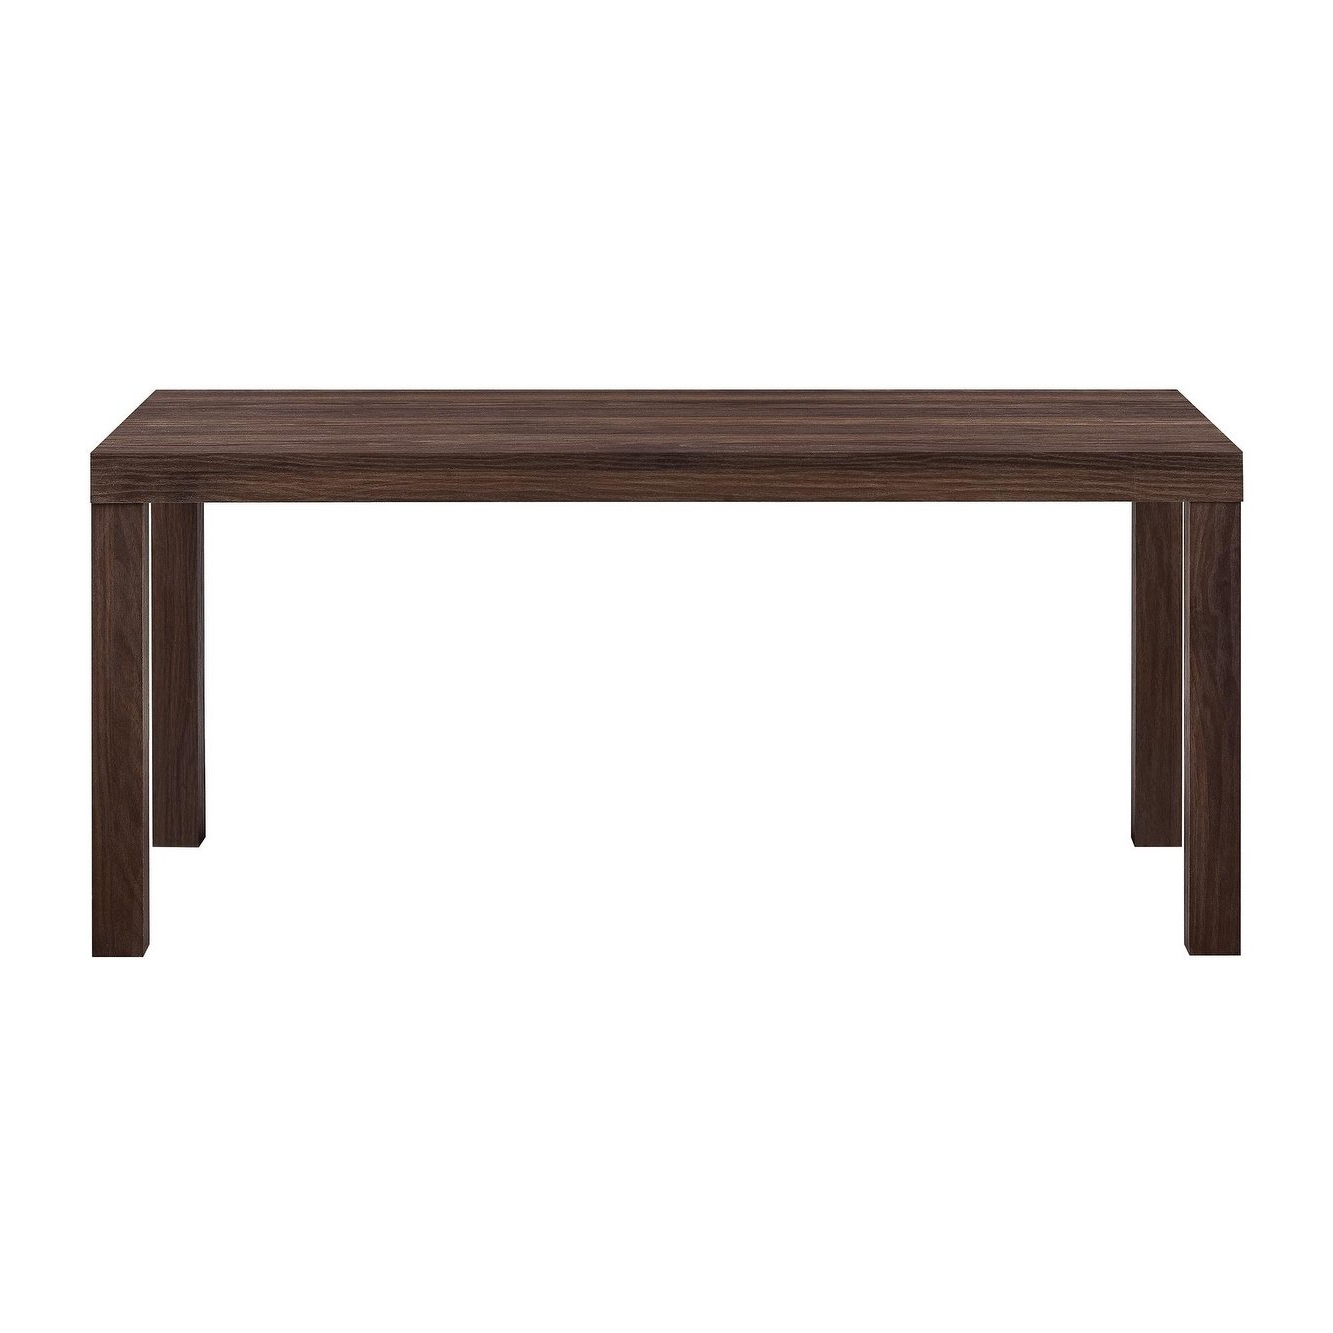 Shop Avenue Greene Jaxon Walnut Coffee Table – Free Shipping Today With Regard To 2019 Jaxon Cocktail Tables (View 18 of 20)